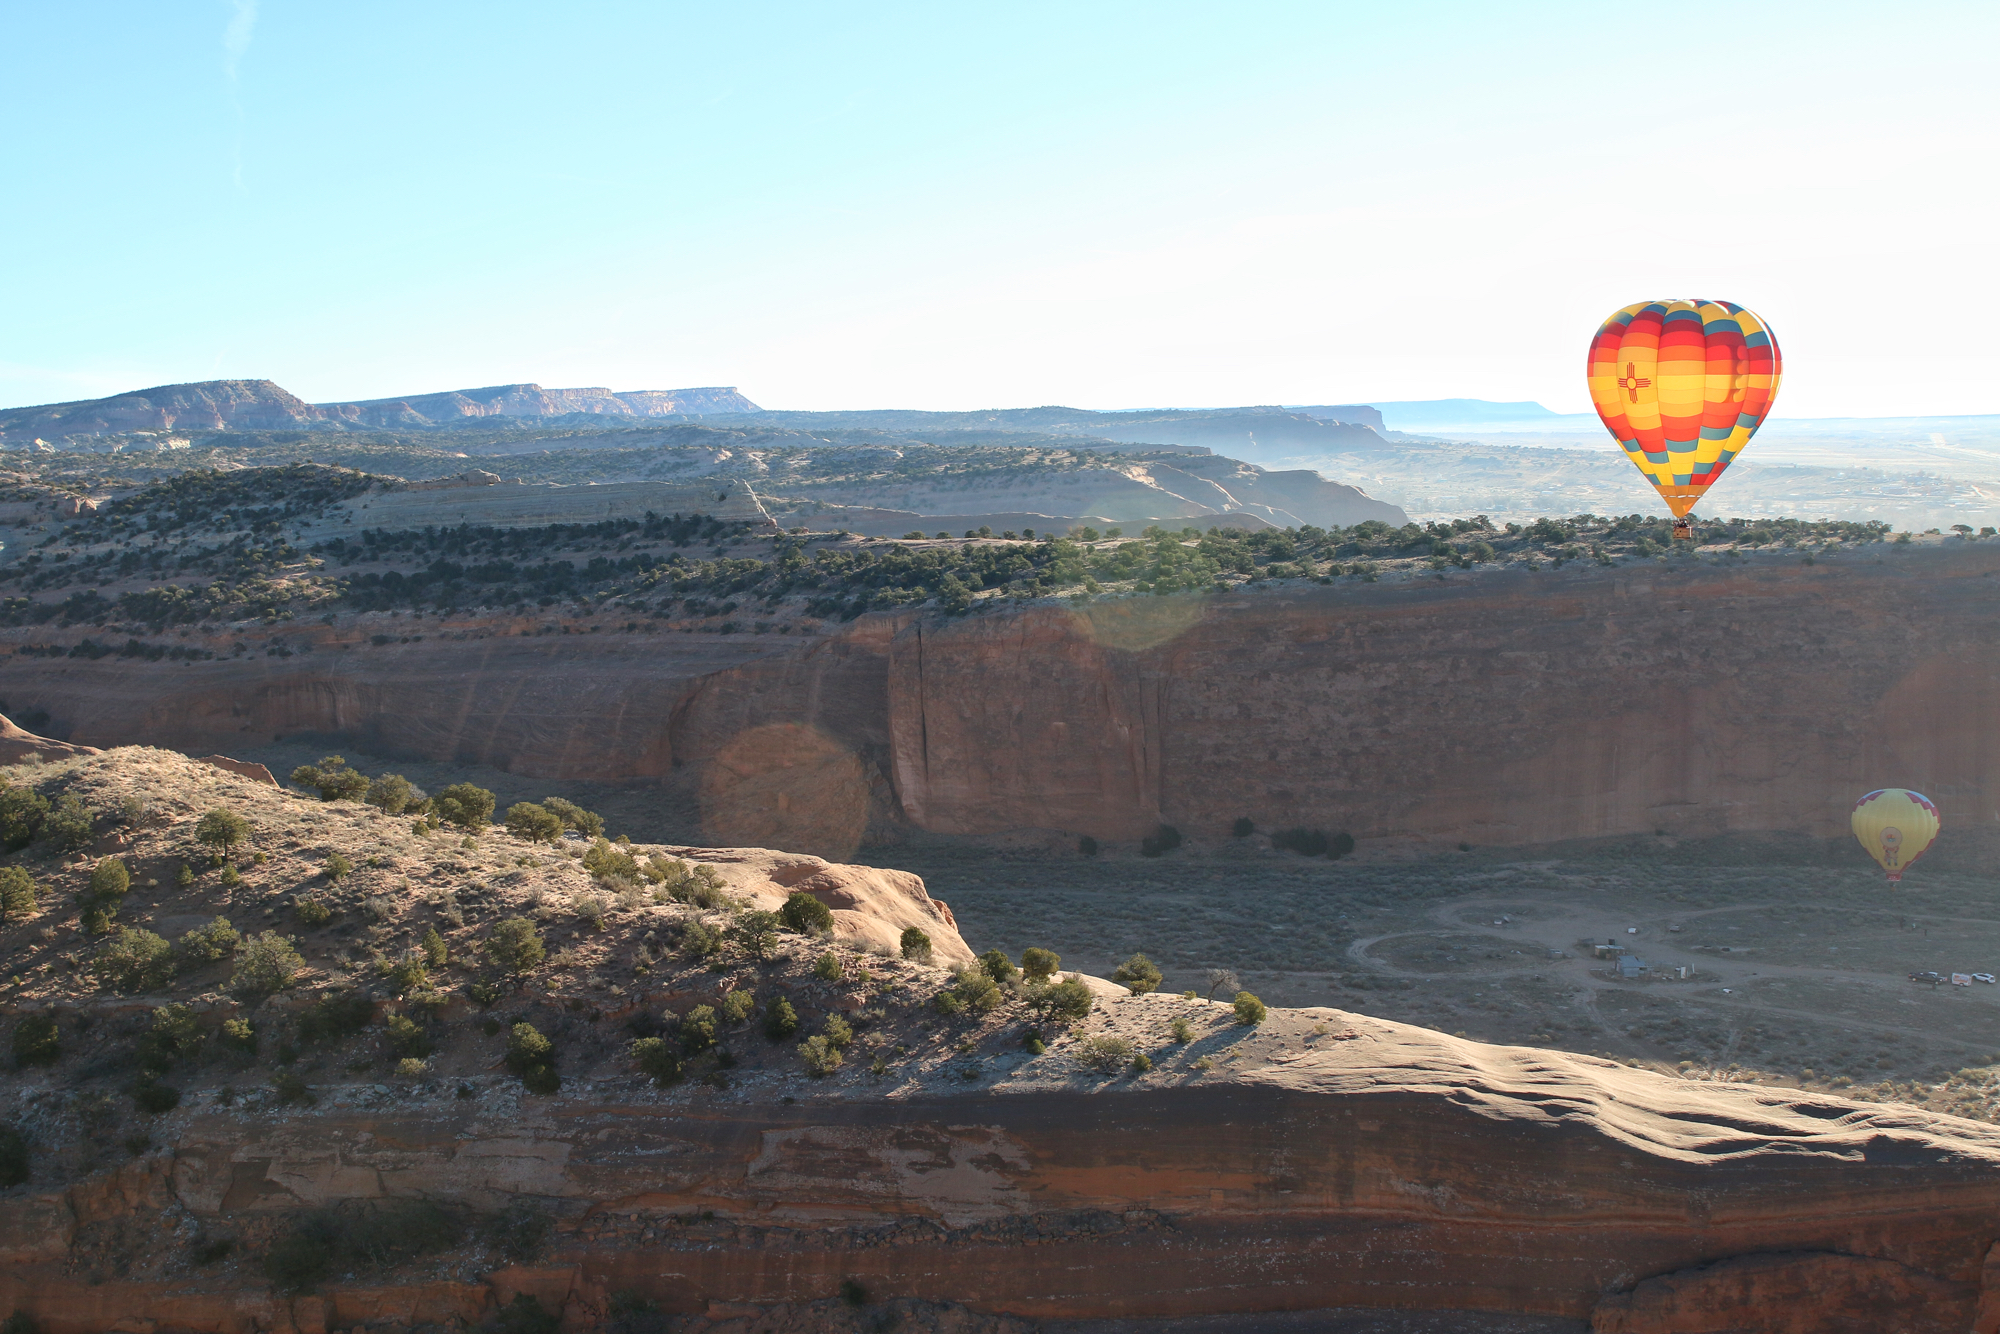 hot air balloon in flight in gallup, New Mexico